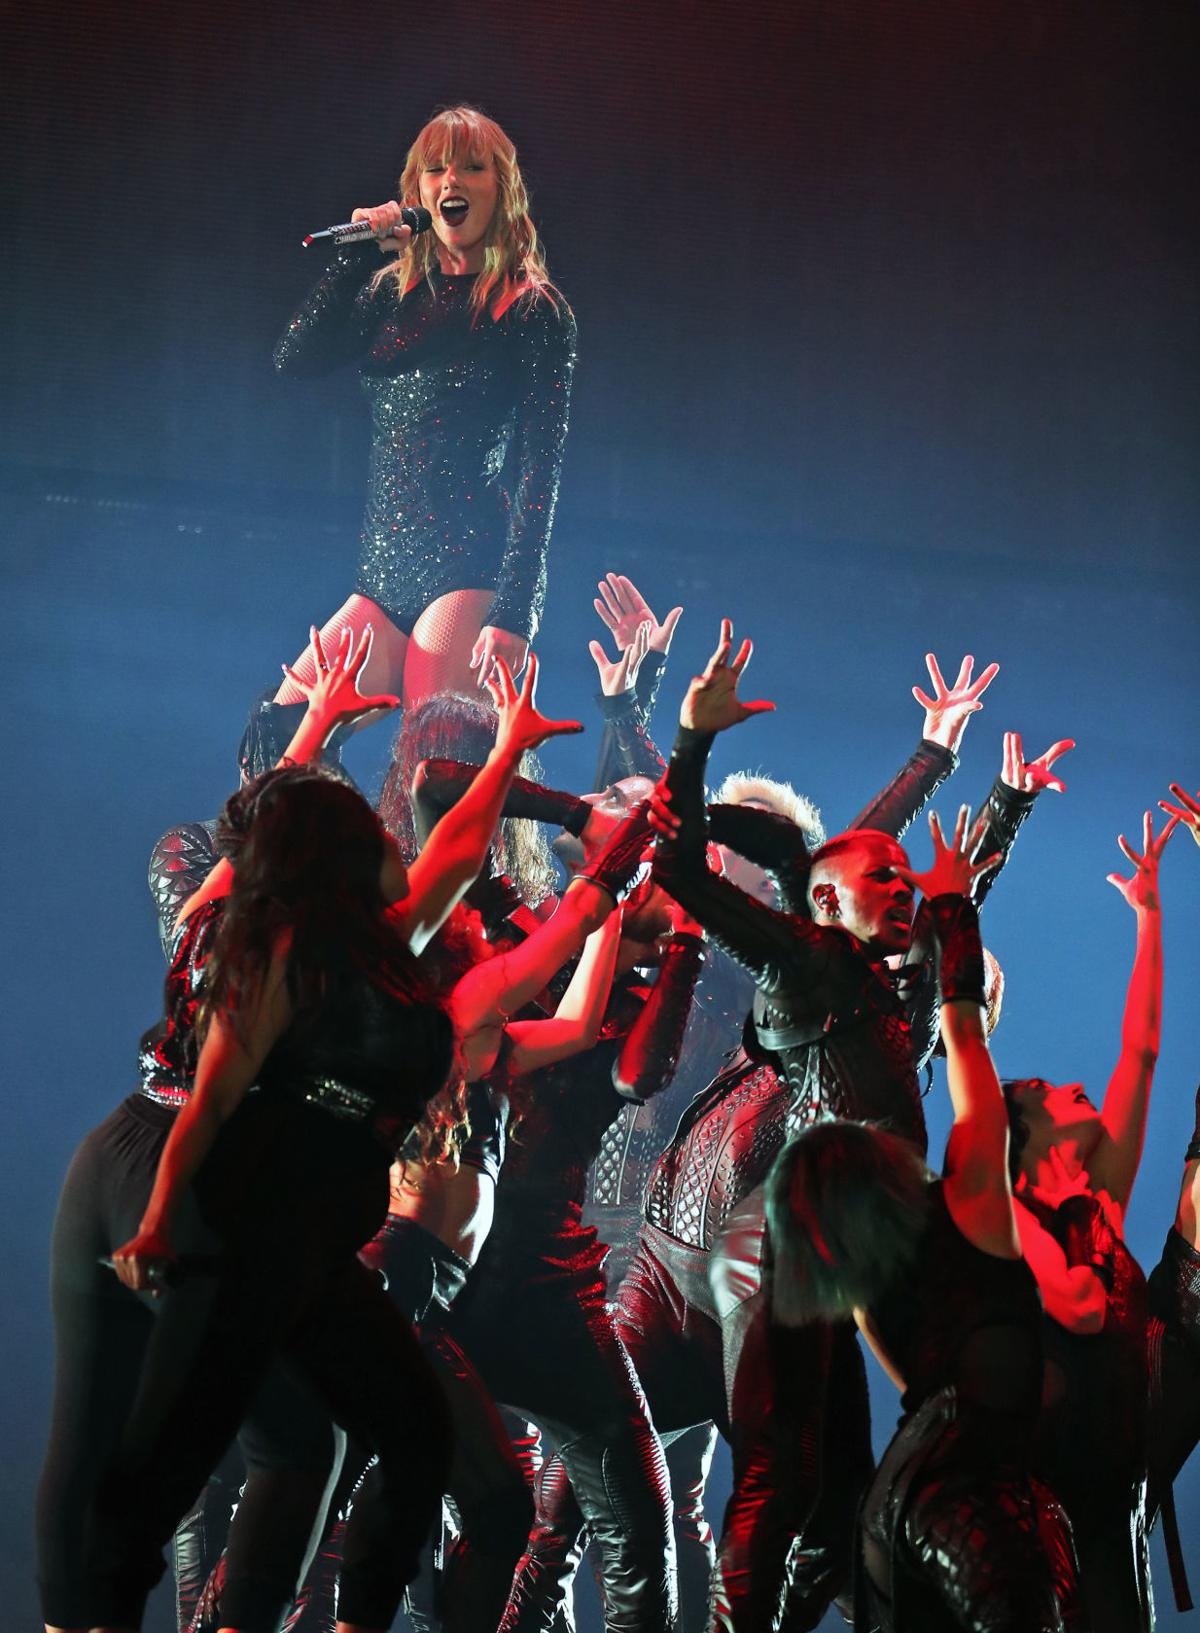 Concert Review Brash And Fierce Taylor Swift Confidently Kicks Off Three Show Stand At Gillette Stories Thesunchronicle Com